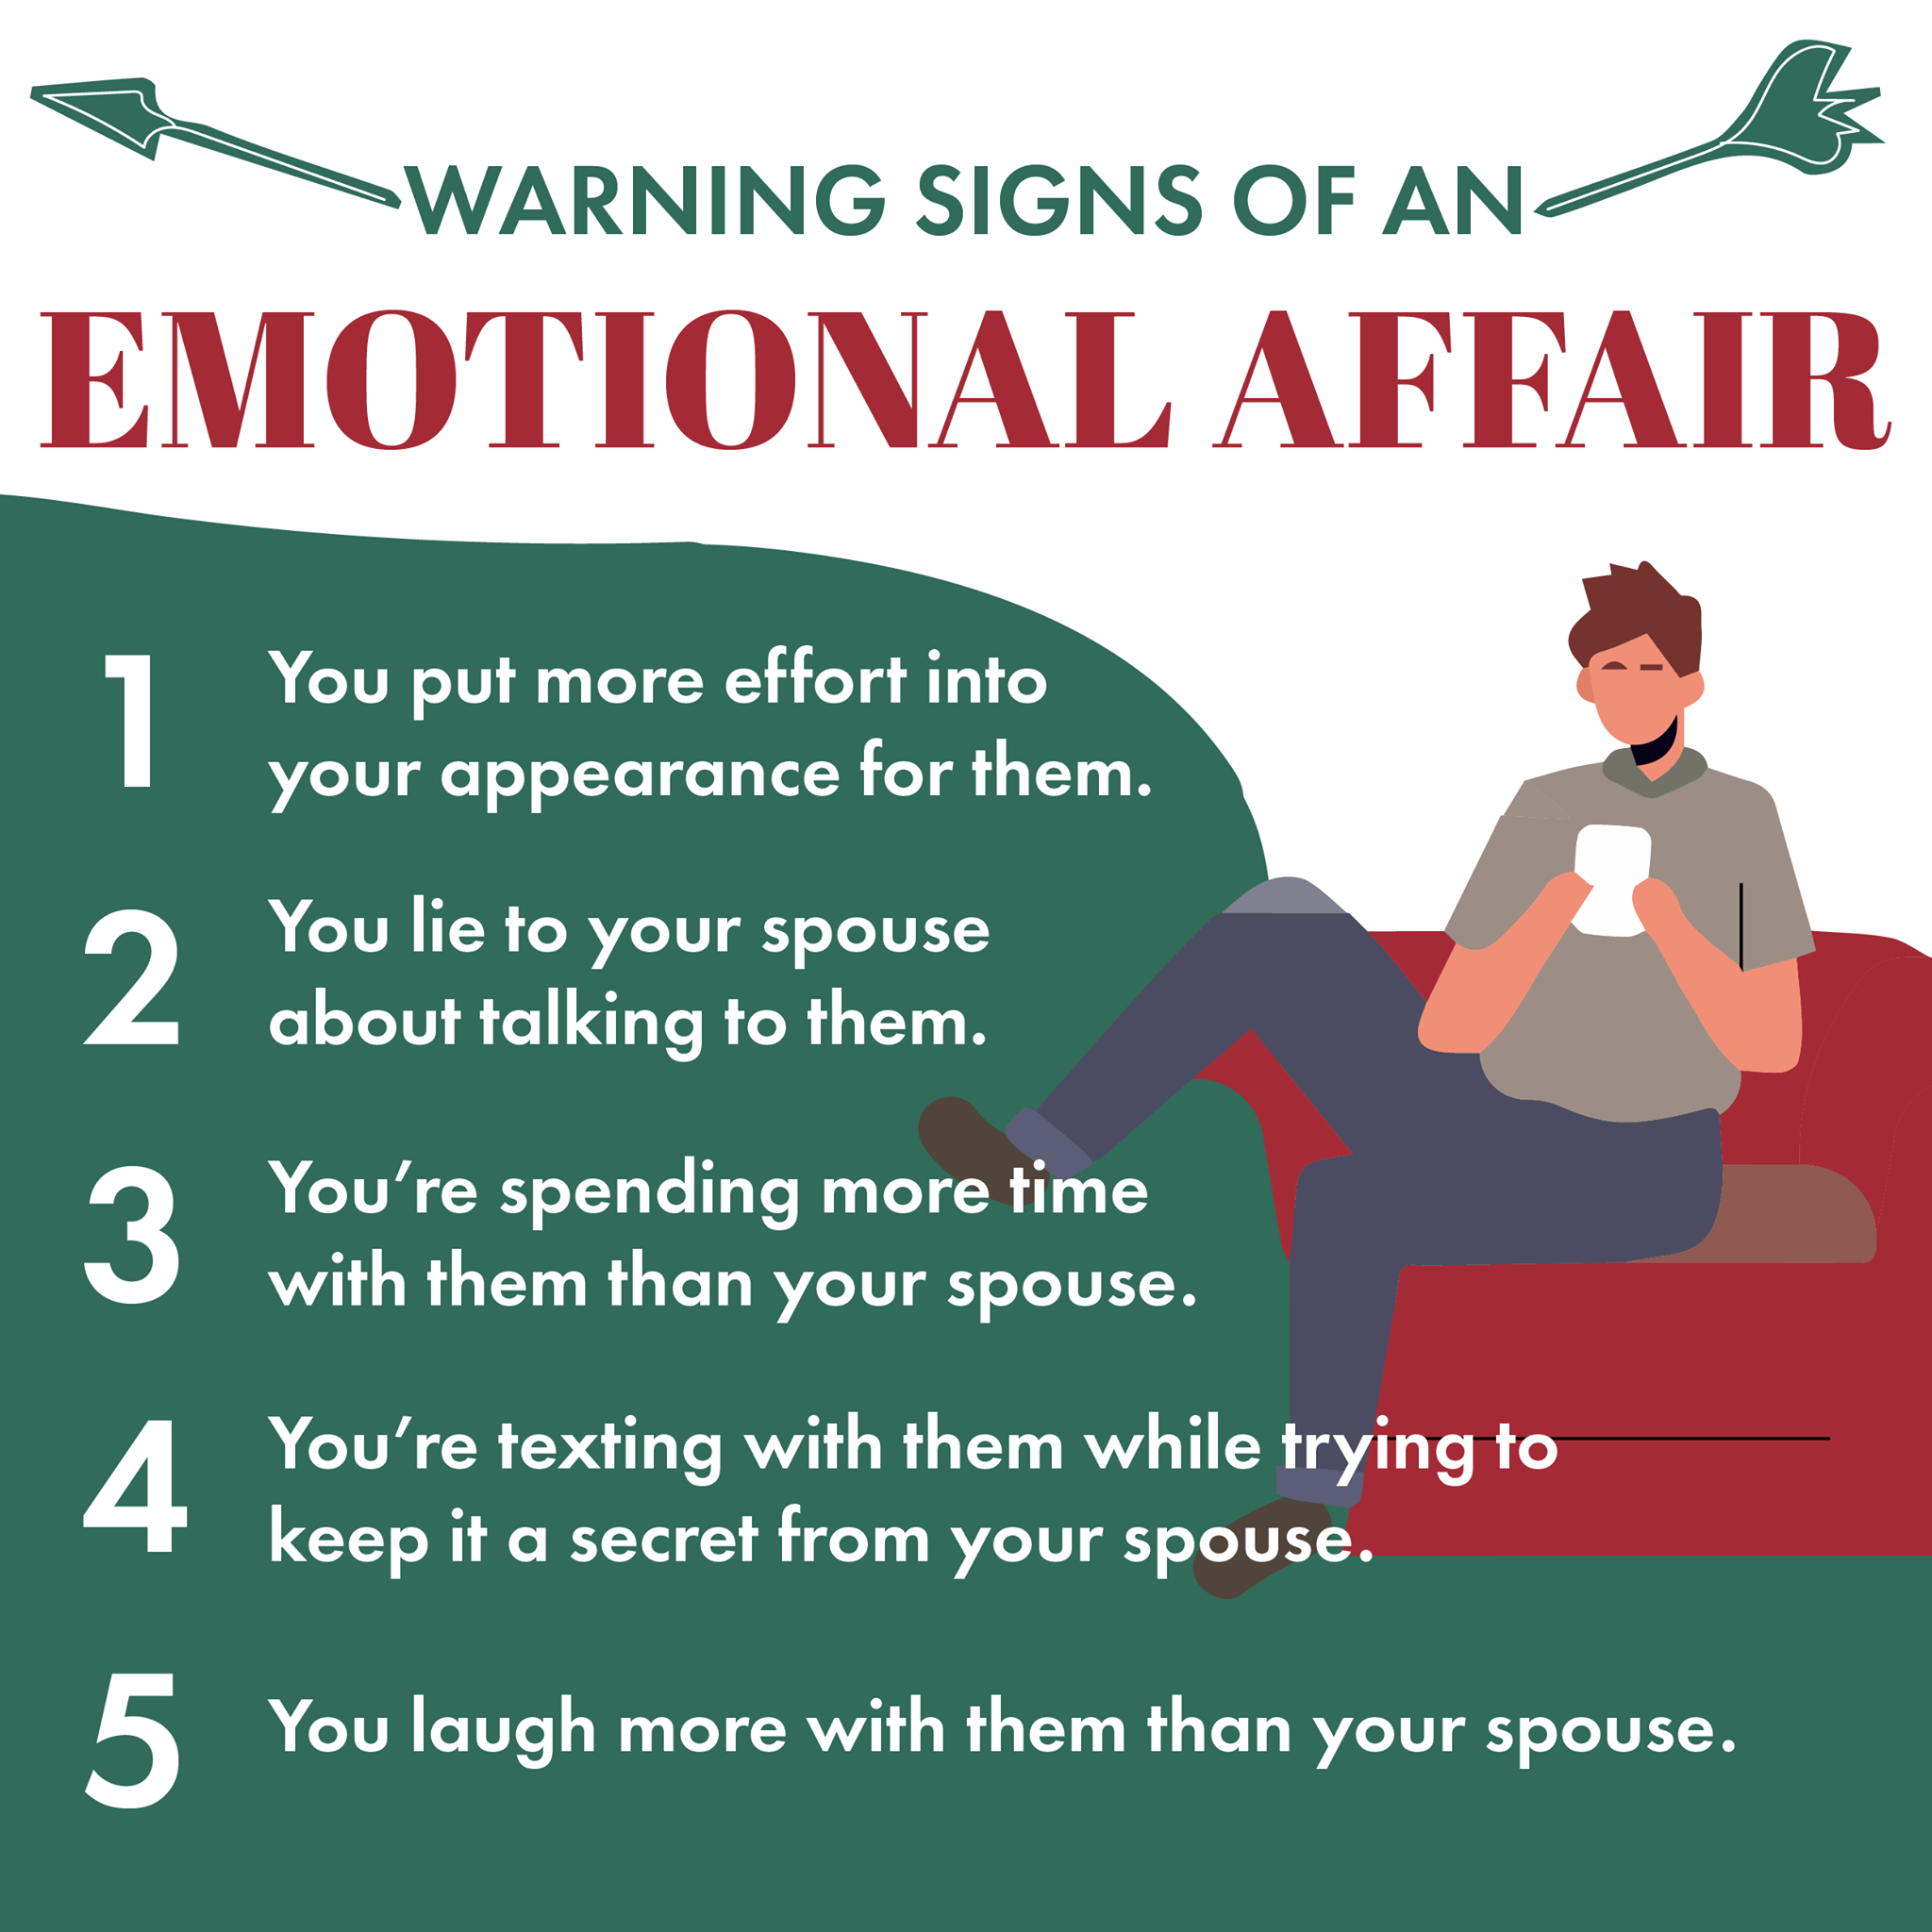 Warning Signs of an Emotional Affair - First Things First